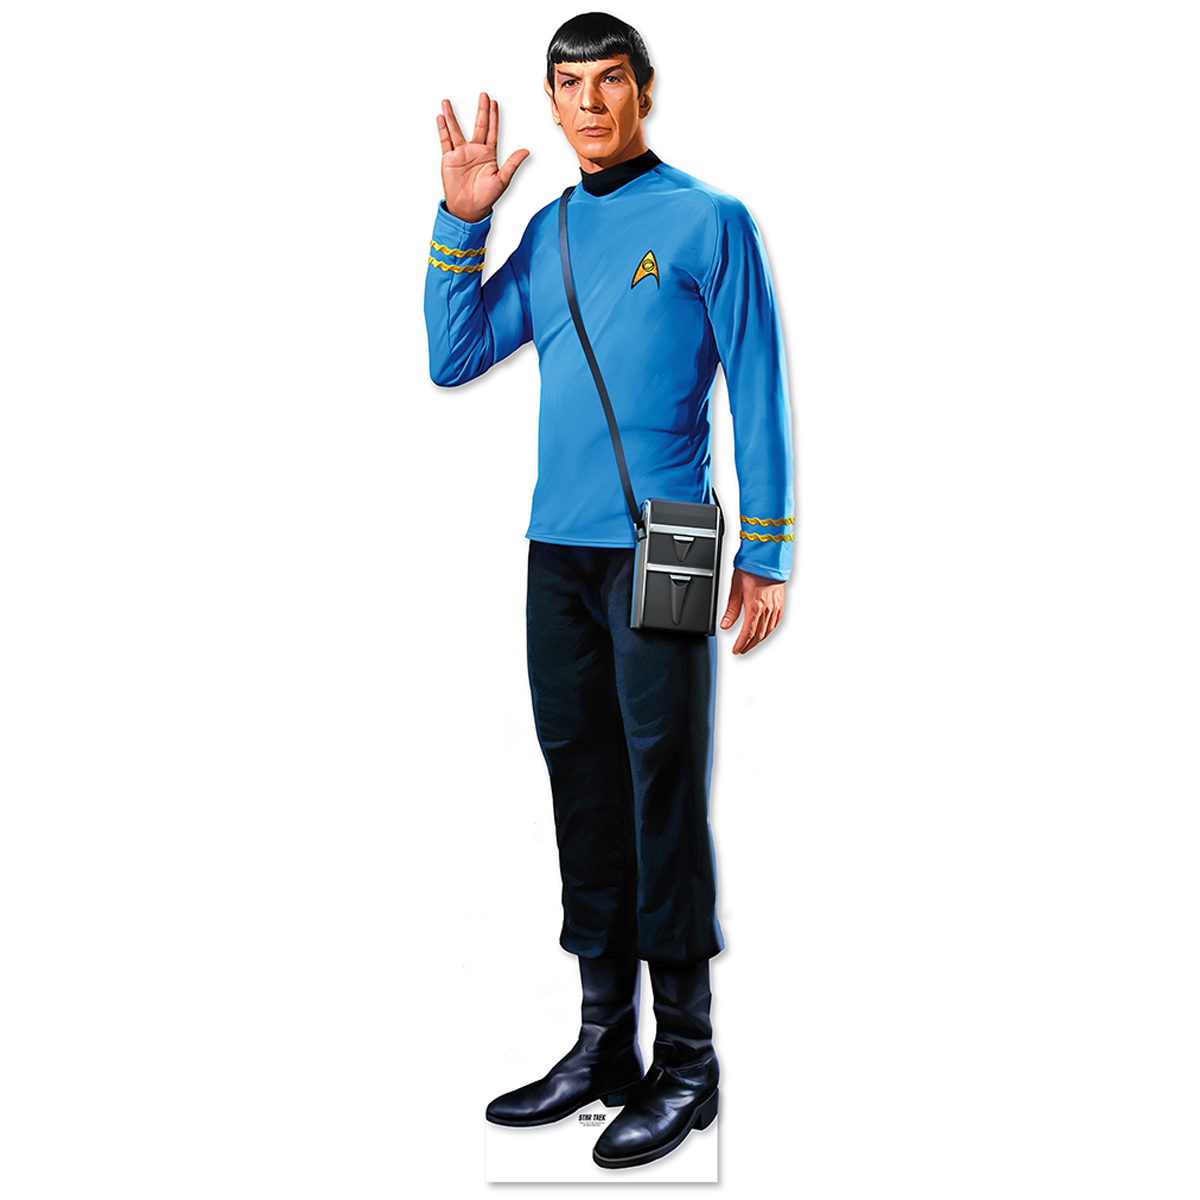 Star Trek The Original Series Spock Standee